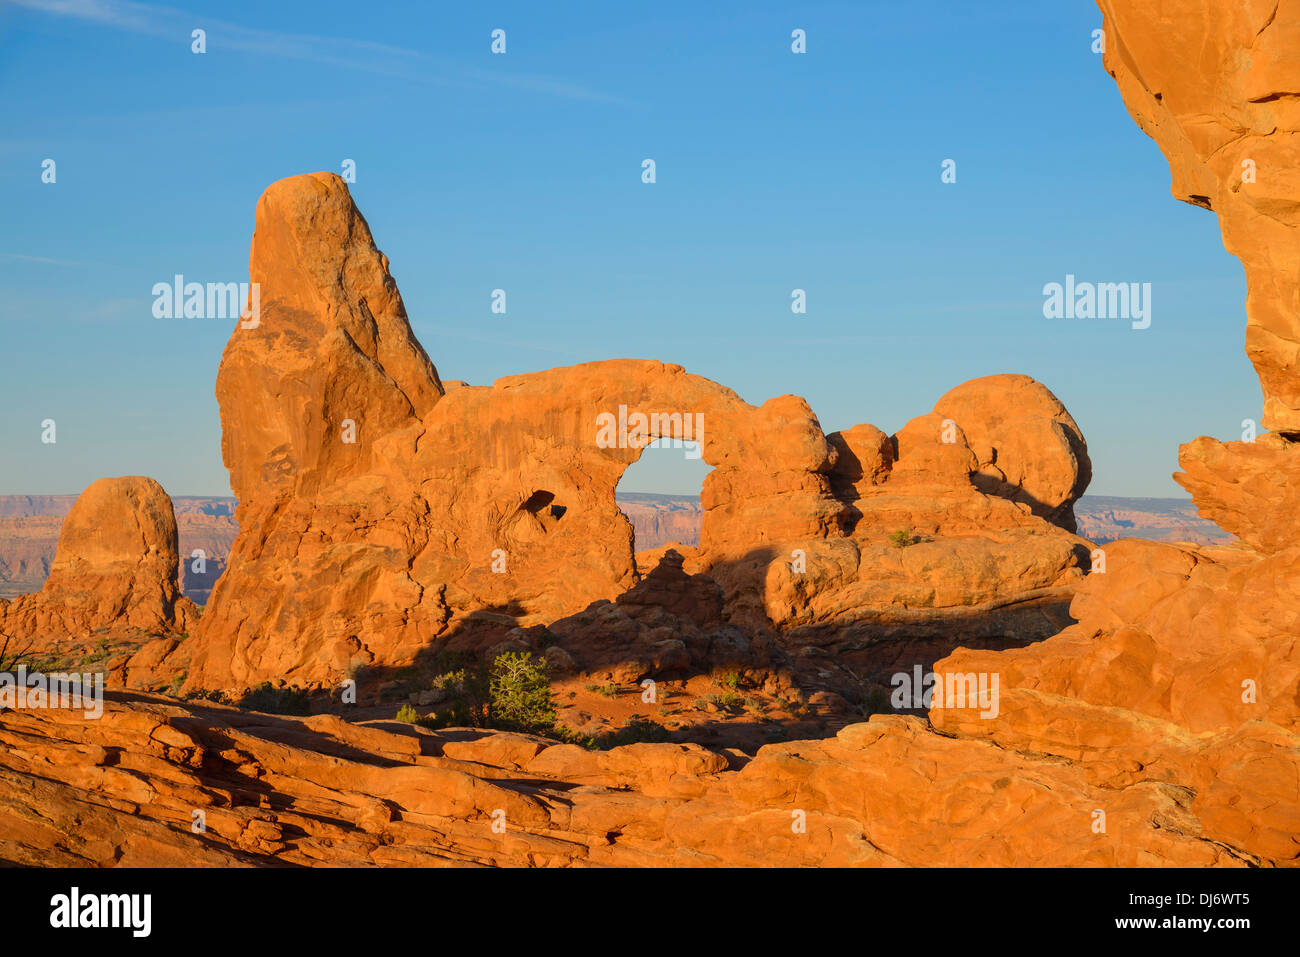 Turret Arch, Arches National Park, Utah, USA - Stock Image